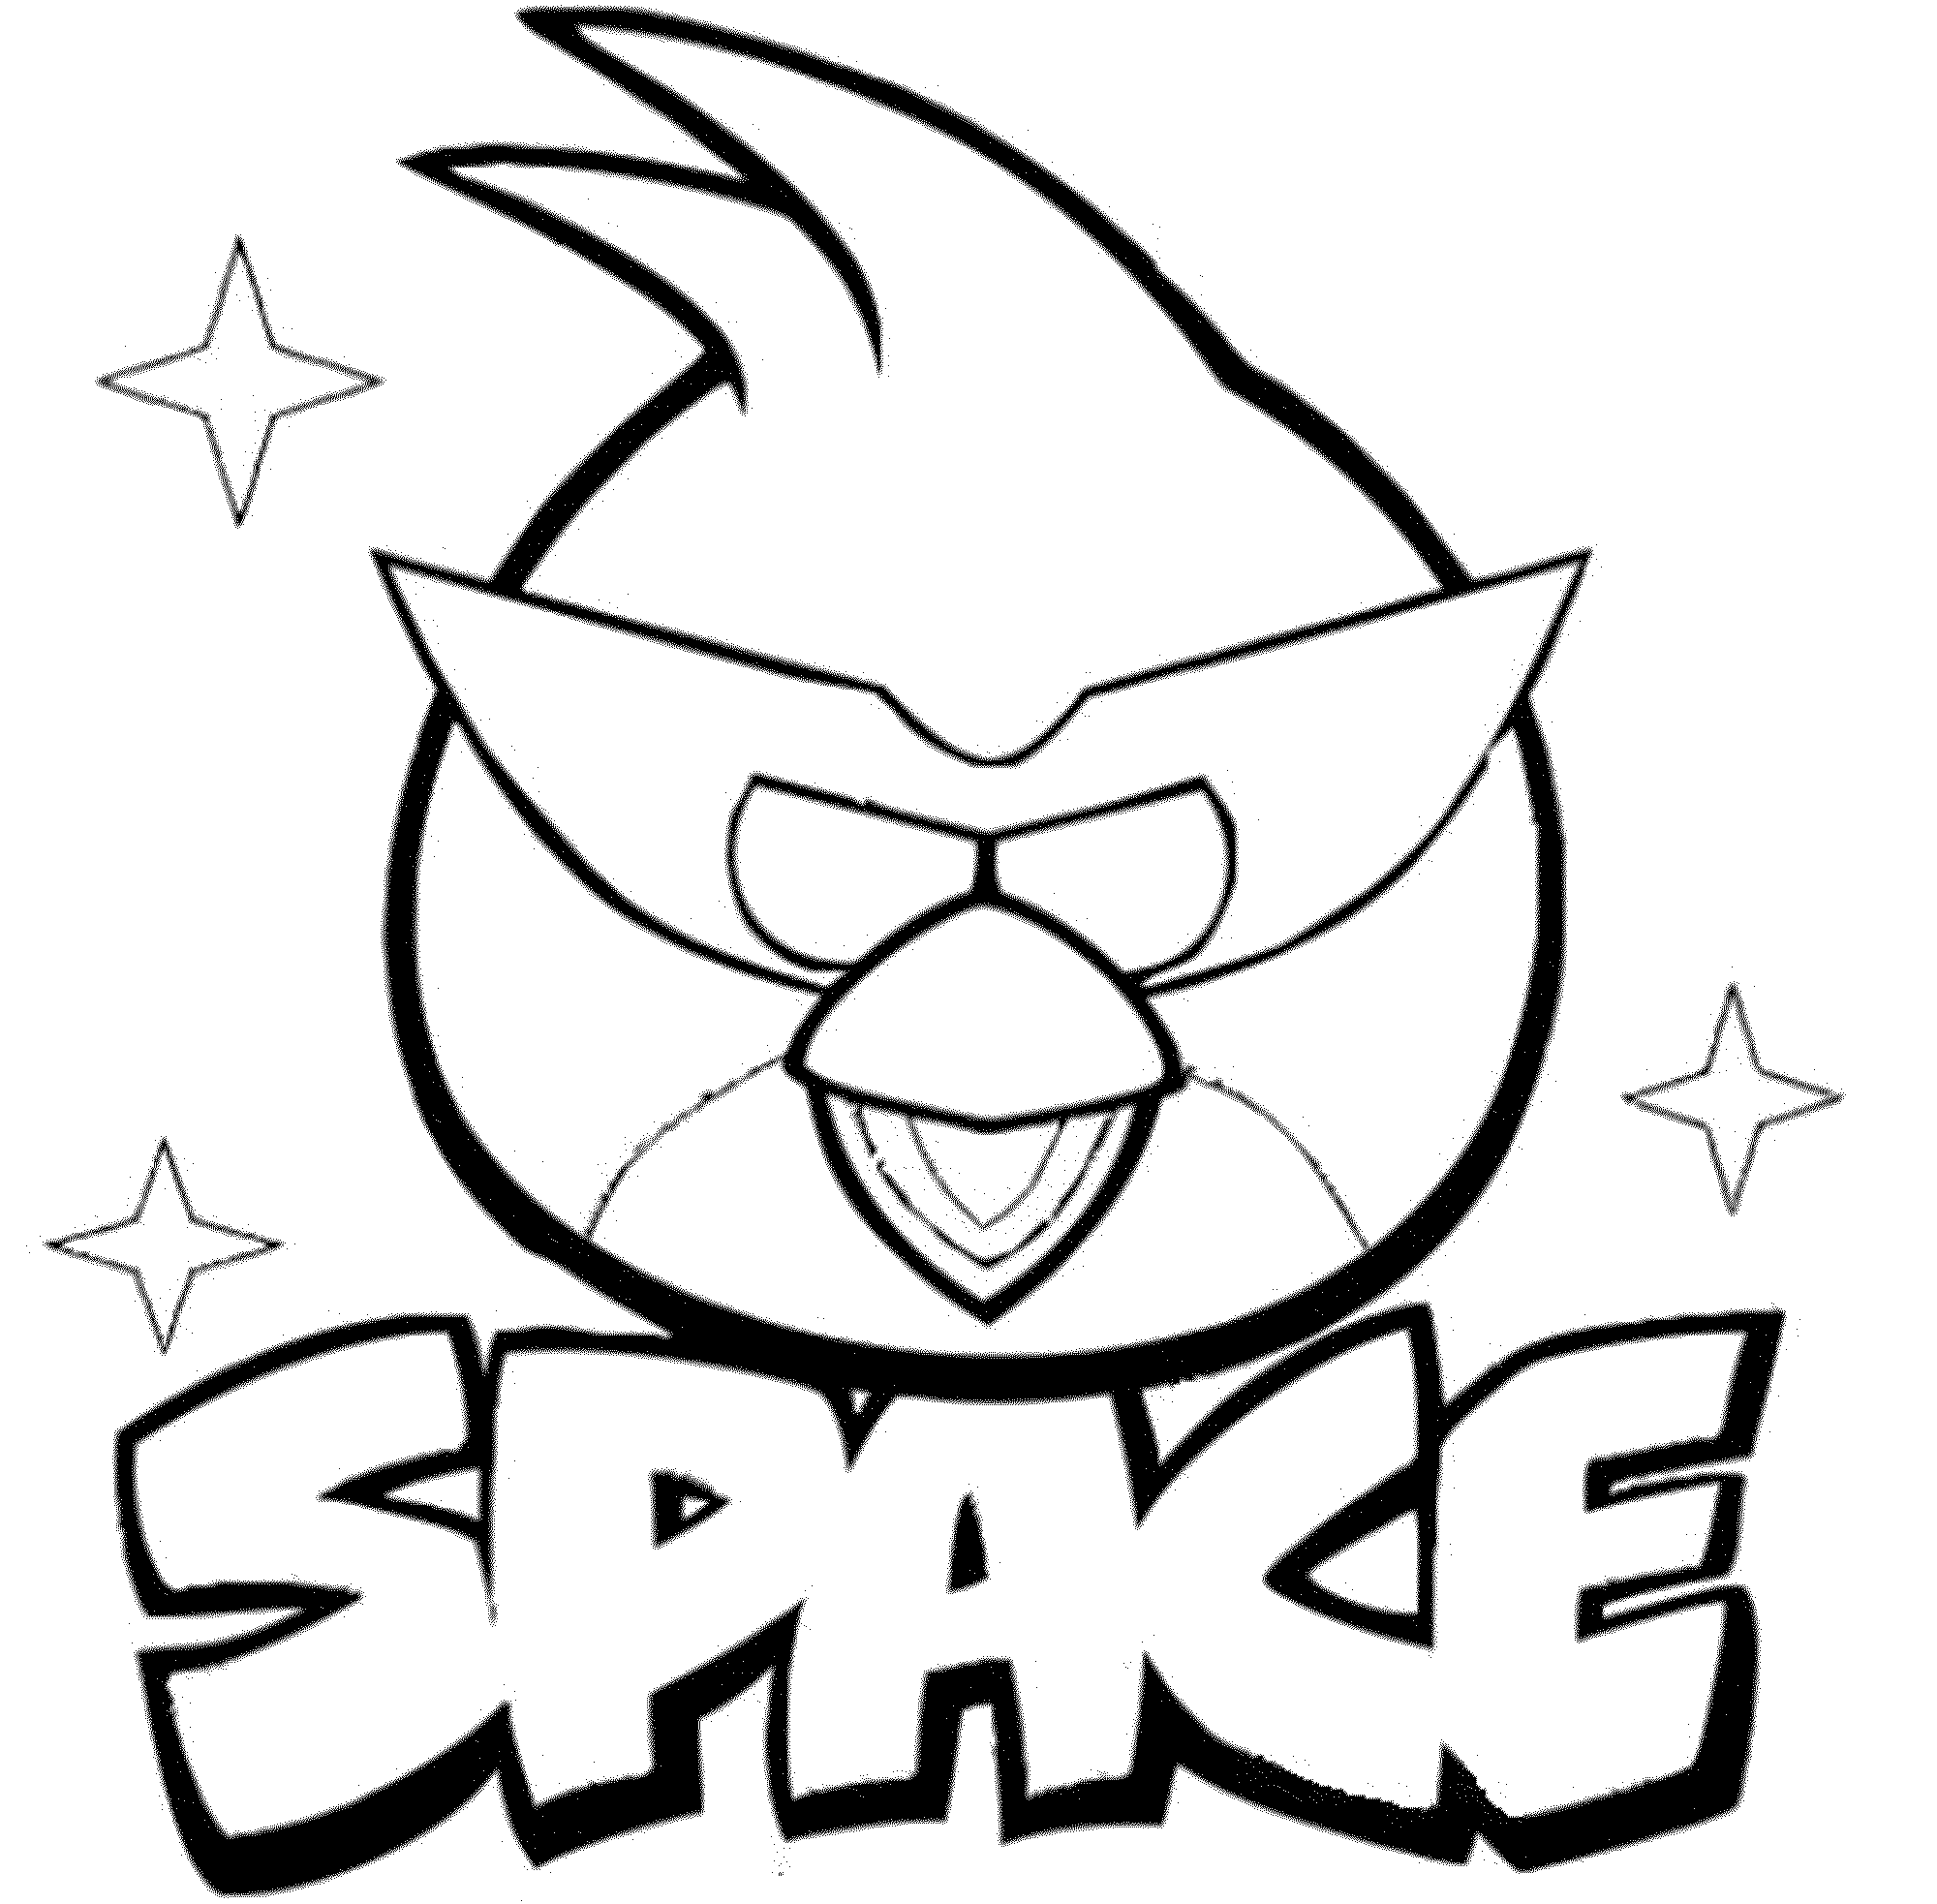 angry birds pictures to print awesome angry birds night coloring page coloring pages pictures birds print angry to